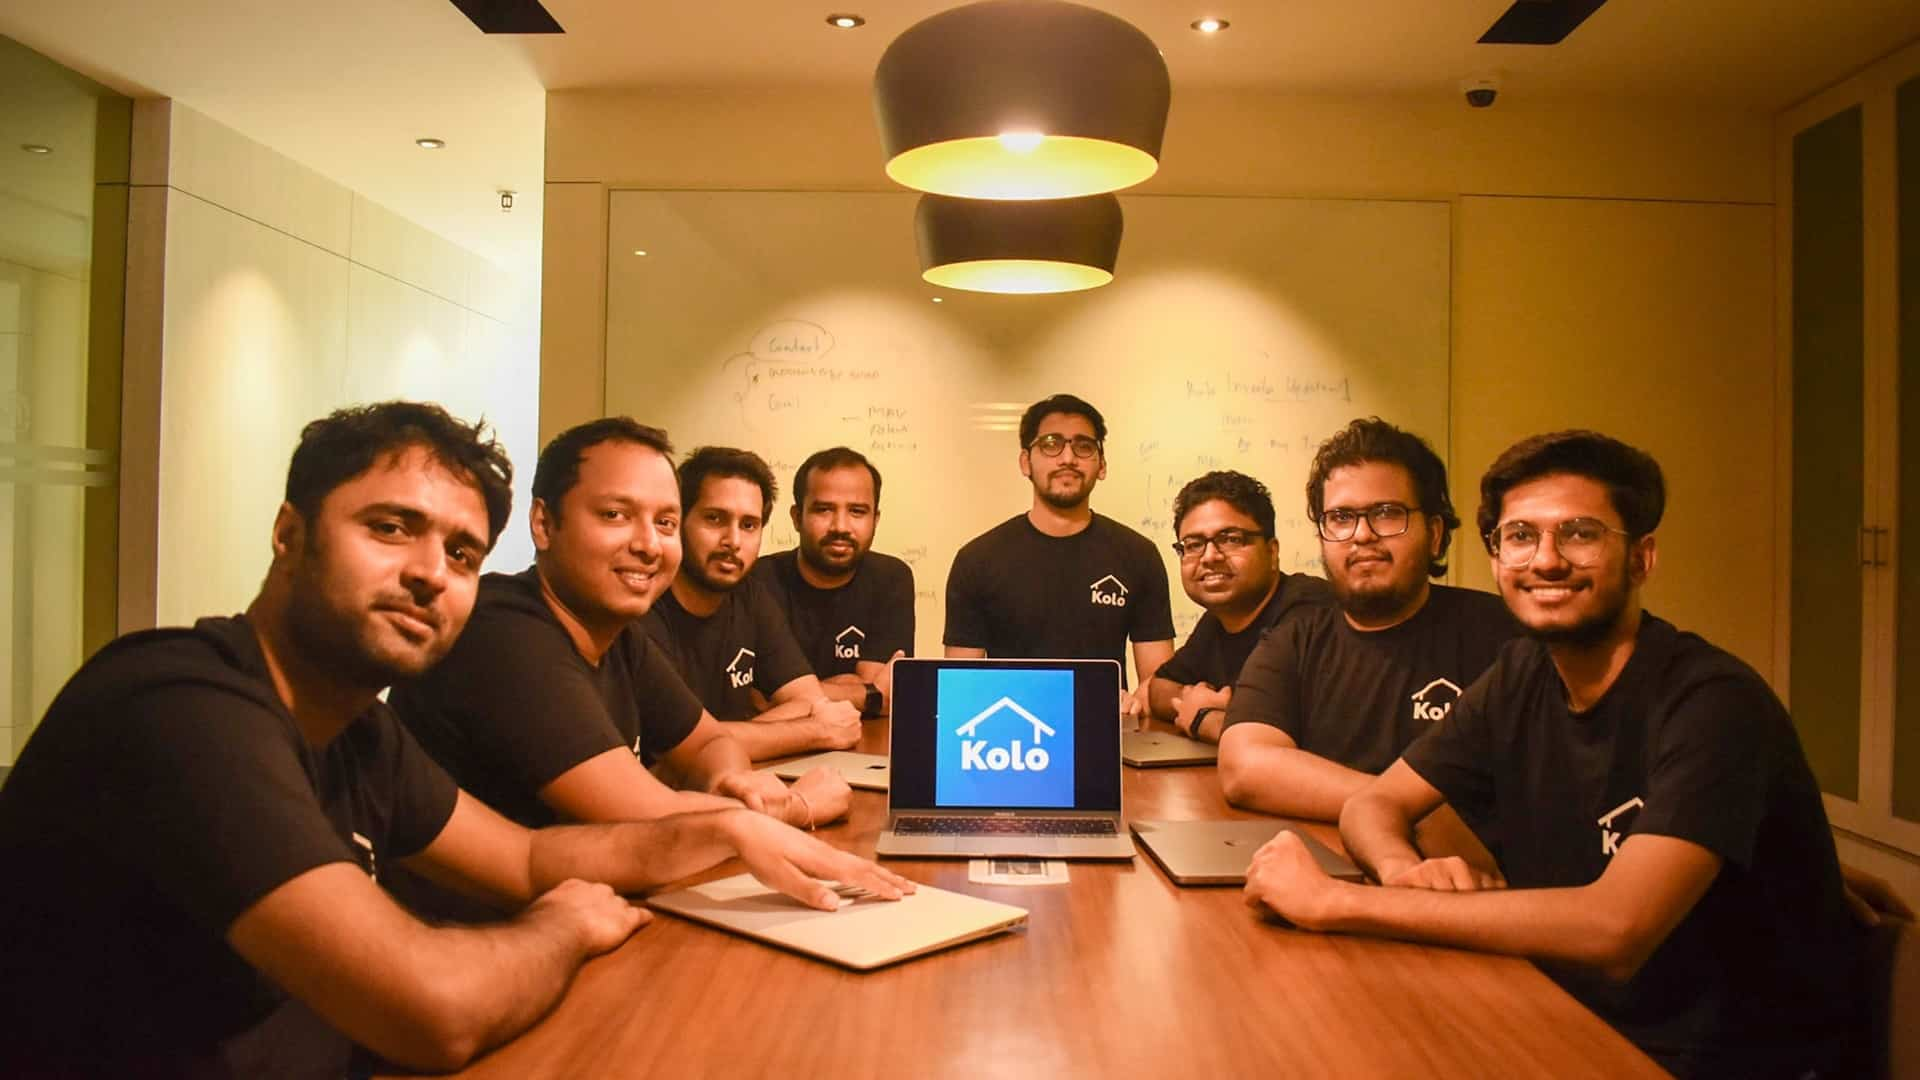 Home construction marketplace Kolo raises USD 550K in pre-seed funding